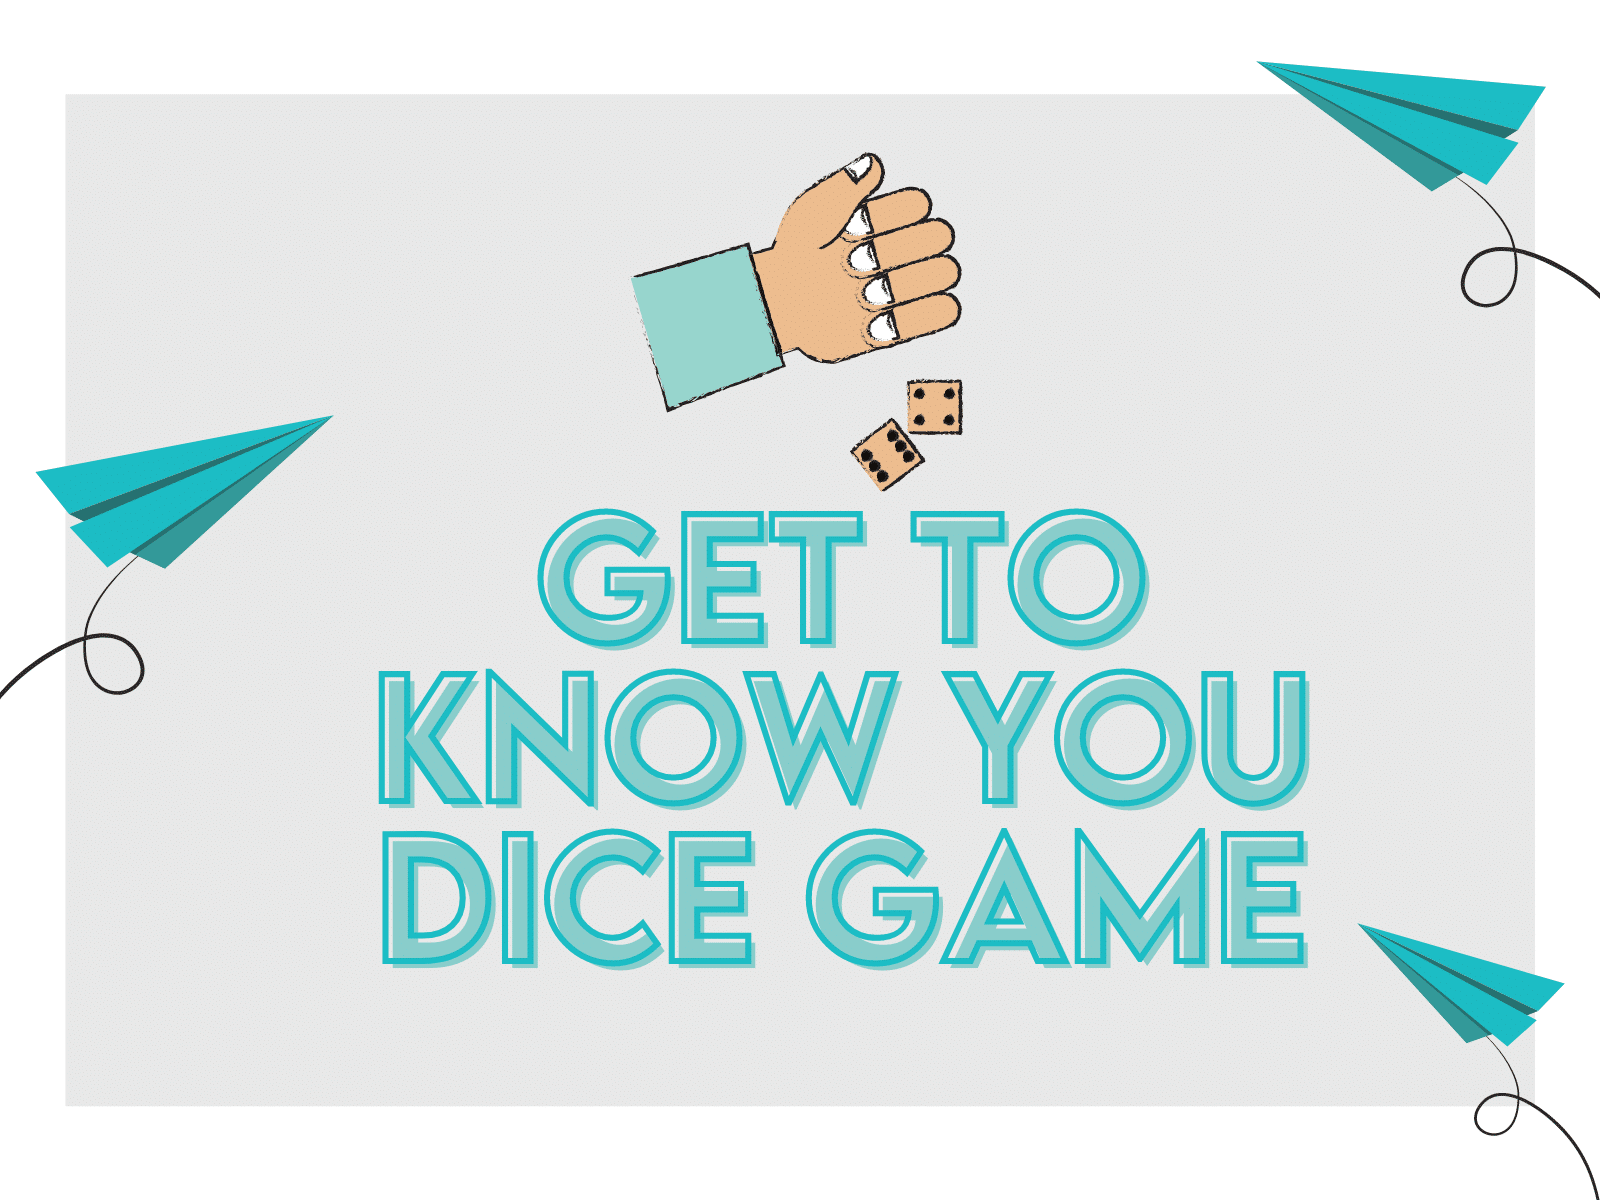 Get to know you dice game for teachers and students.